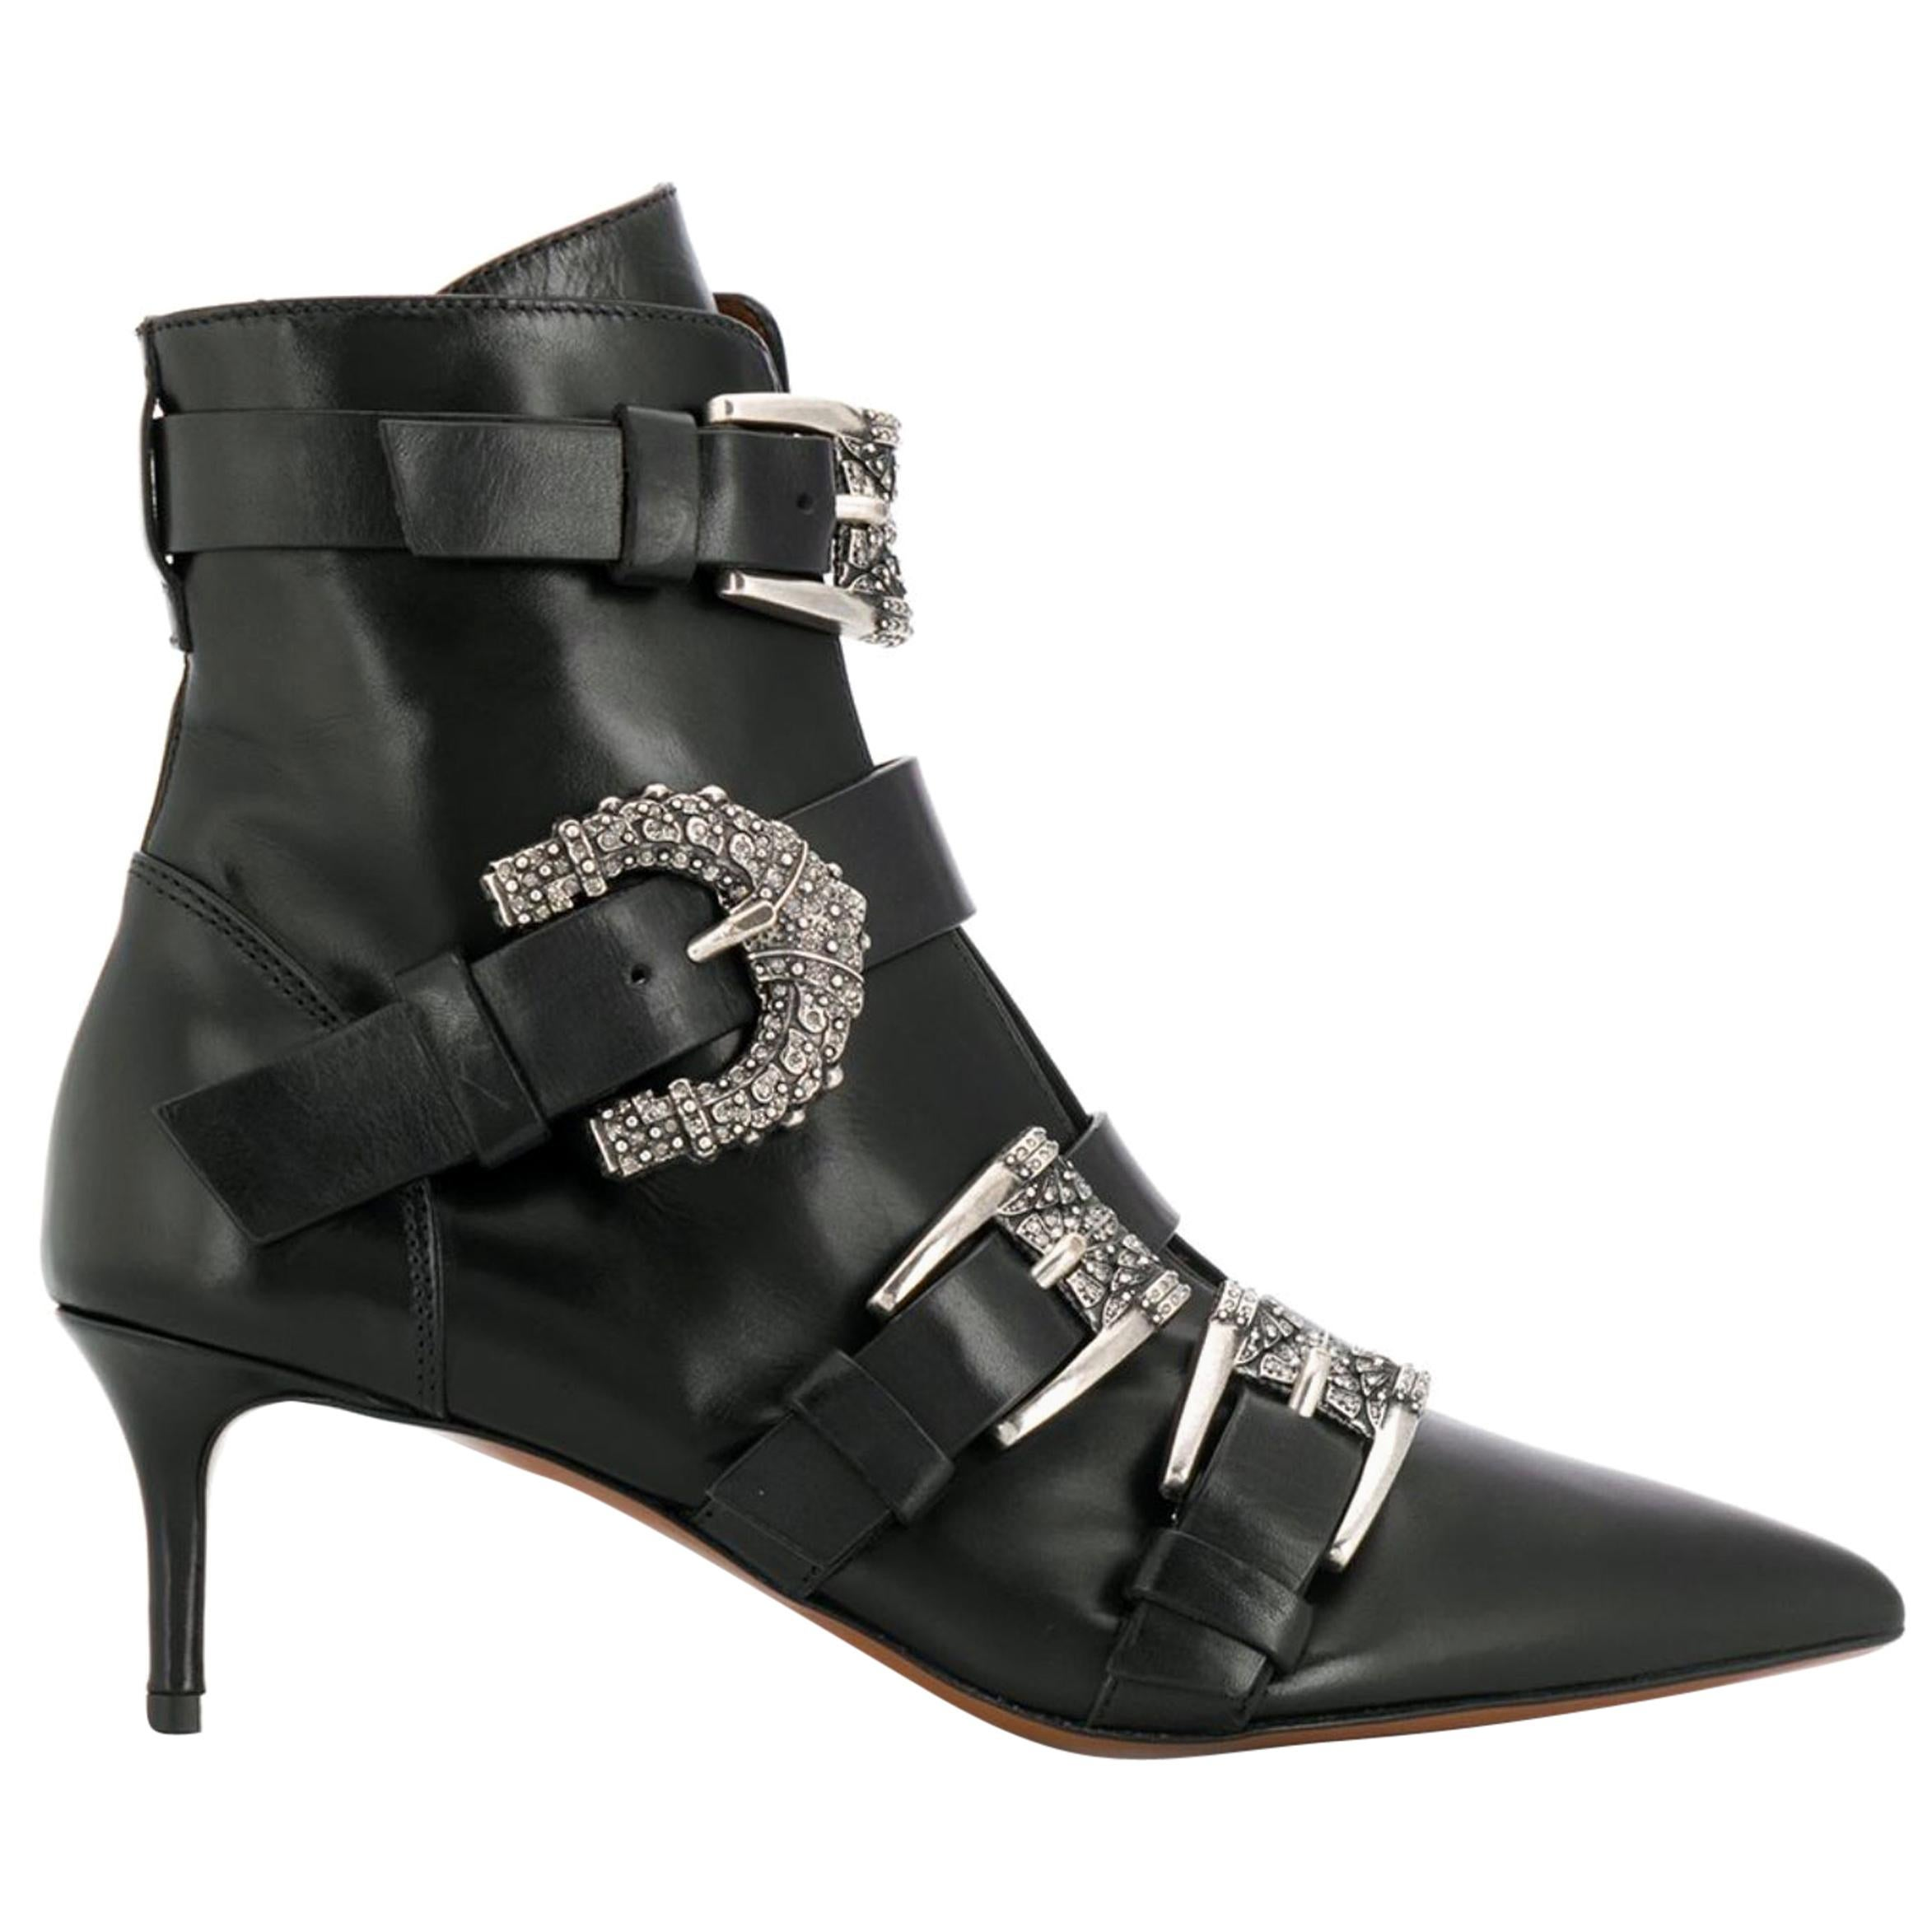 Etro Runway Embellished Side Buckle Black Leather Ankle Boots Size 40